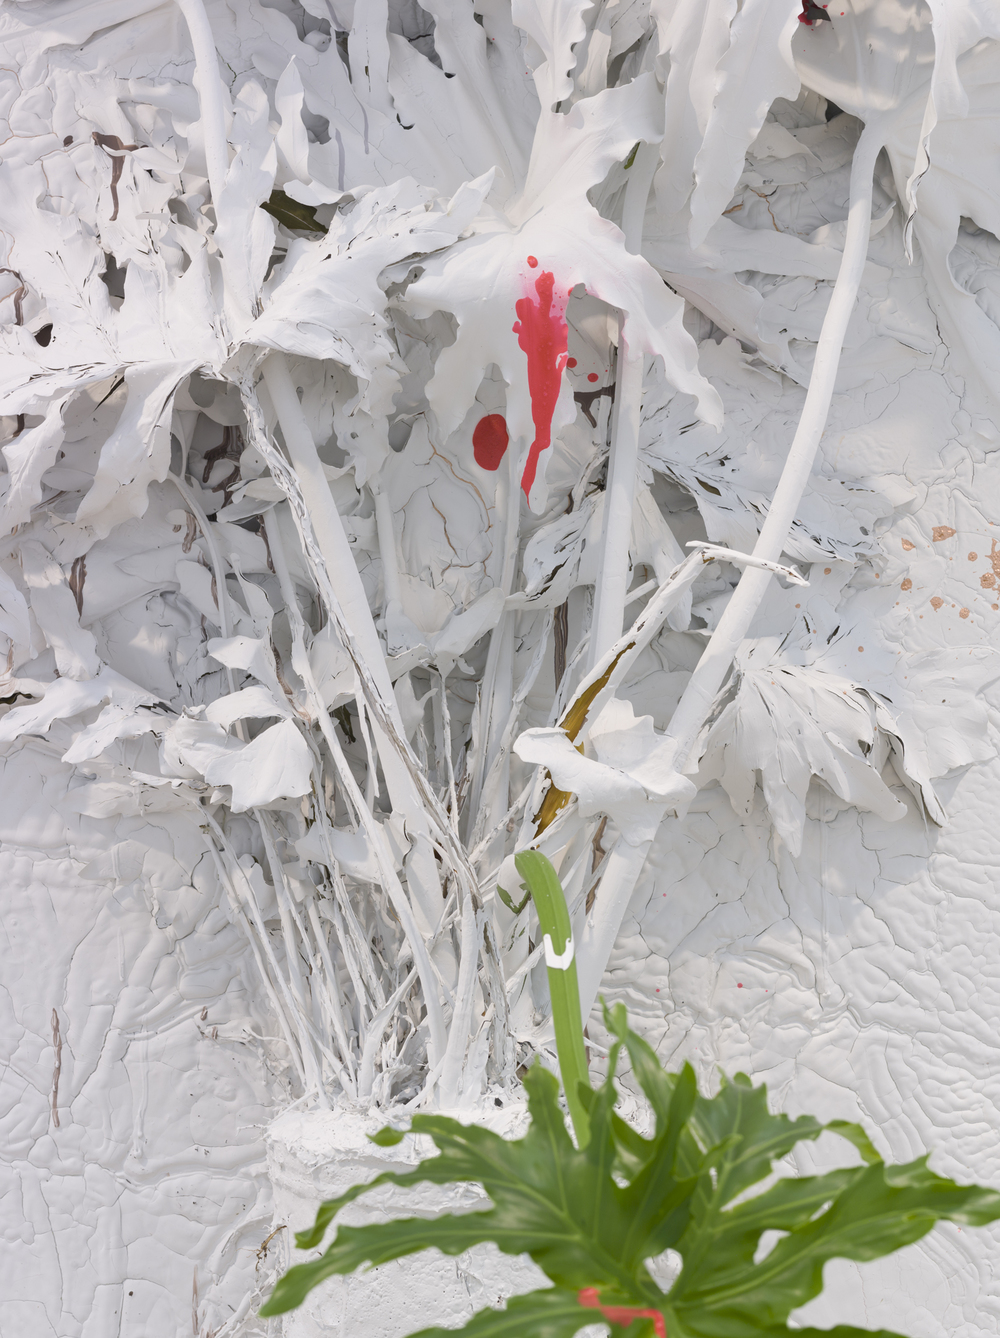 Detail, Pressed Plant (Hanging Gardens), 2012, Banana palm, latex paint, spray paint, glass, resin, mirror, glass, bone, porcelain, 92 x 45 inches